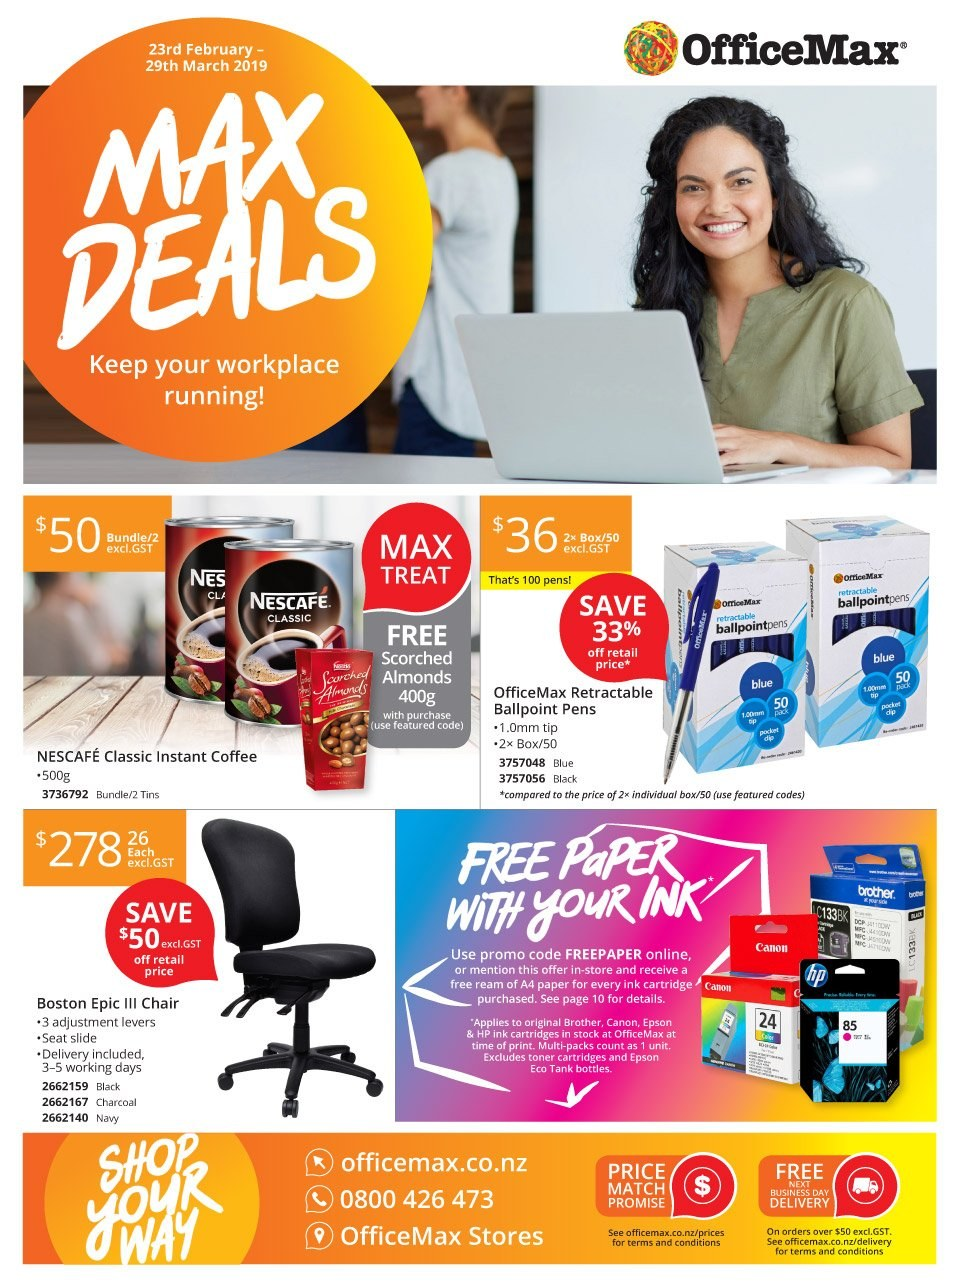 OfficeMax mailer - 23.02.2019 - 29.03.2019 - Sales products - almonds, brother, bundle, canon, coffee, toner, hp, chair, instant coffee, charcoal, paper, cartridge, epson. Page 1.